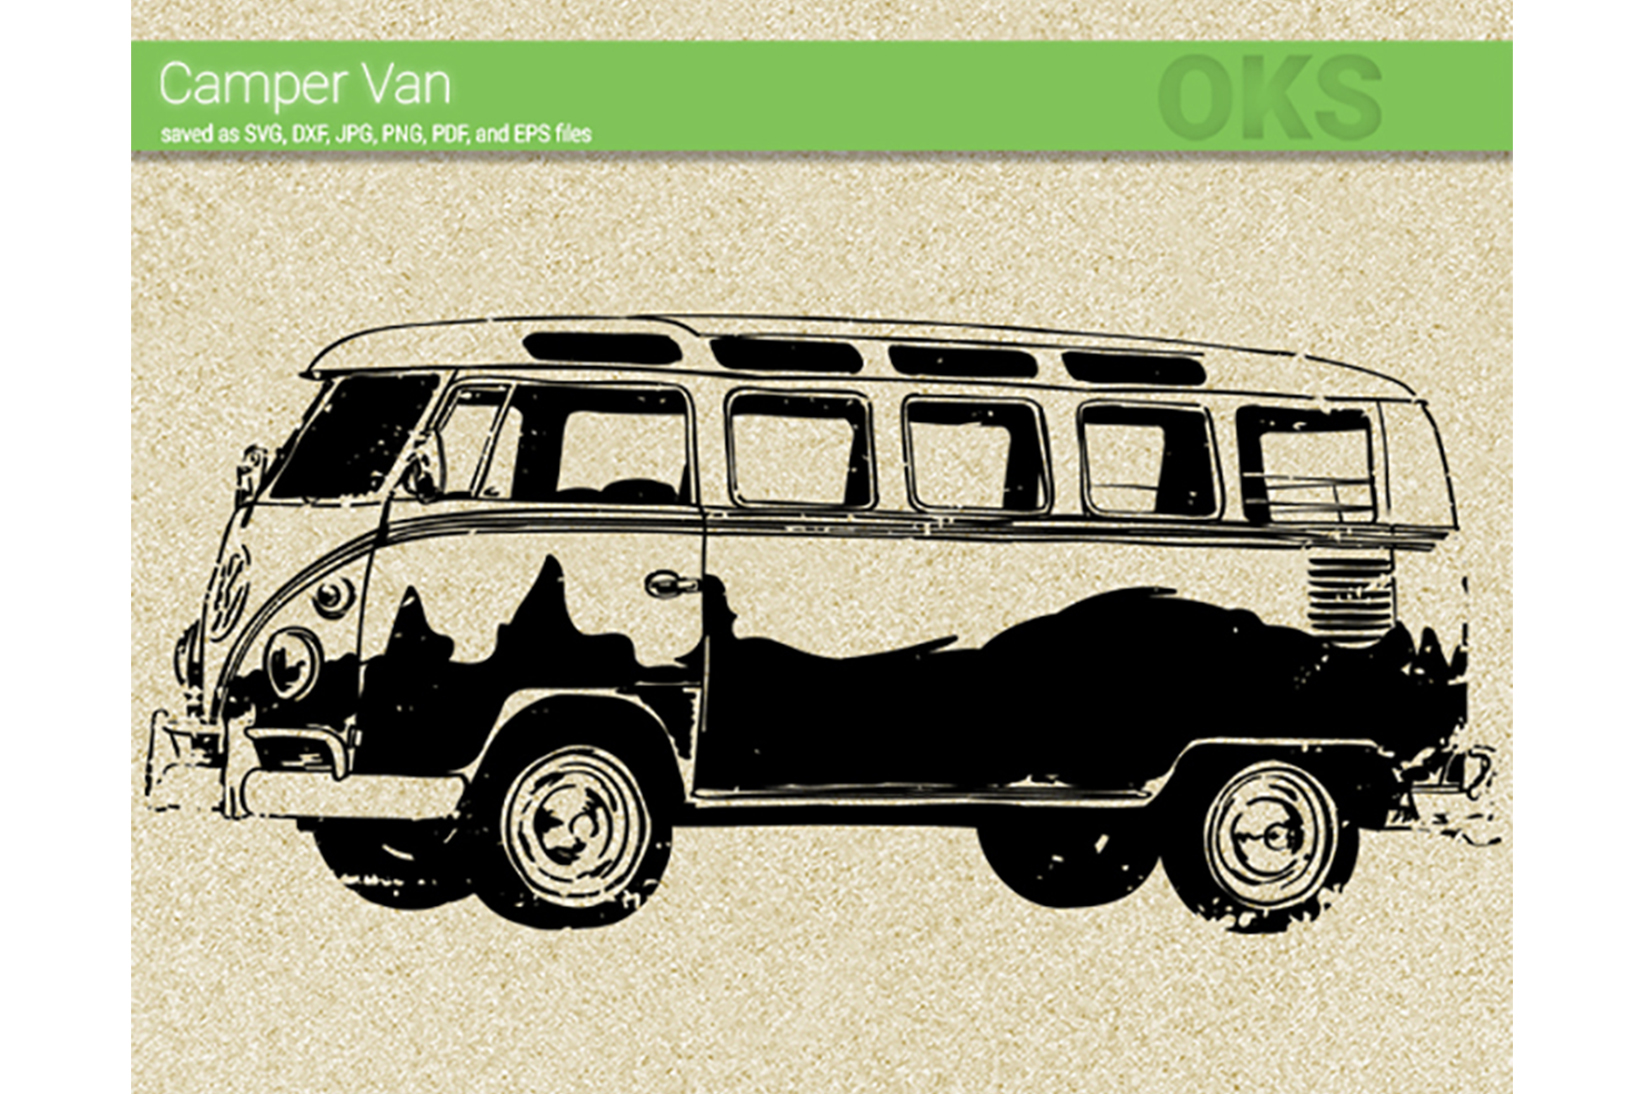 Download Free Camper Van Svg Vector Graphic By Crafteroks Creative Fabrica for Cricut Explore, Silhouette and other cutting machines.